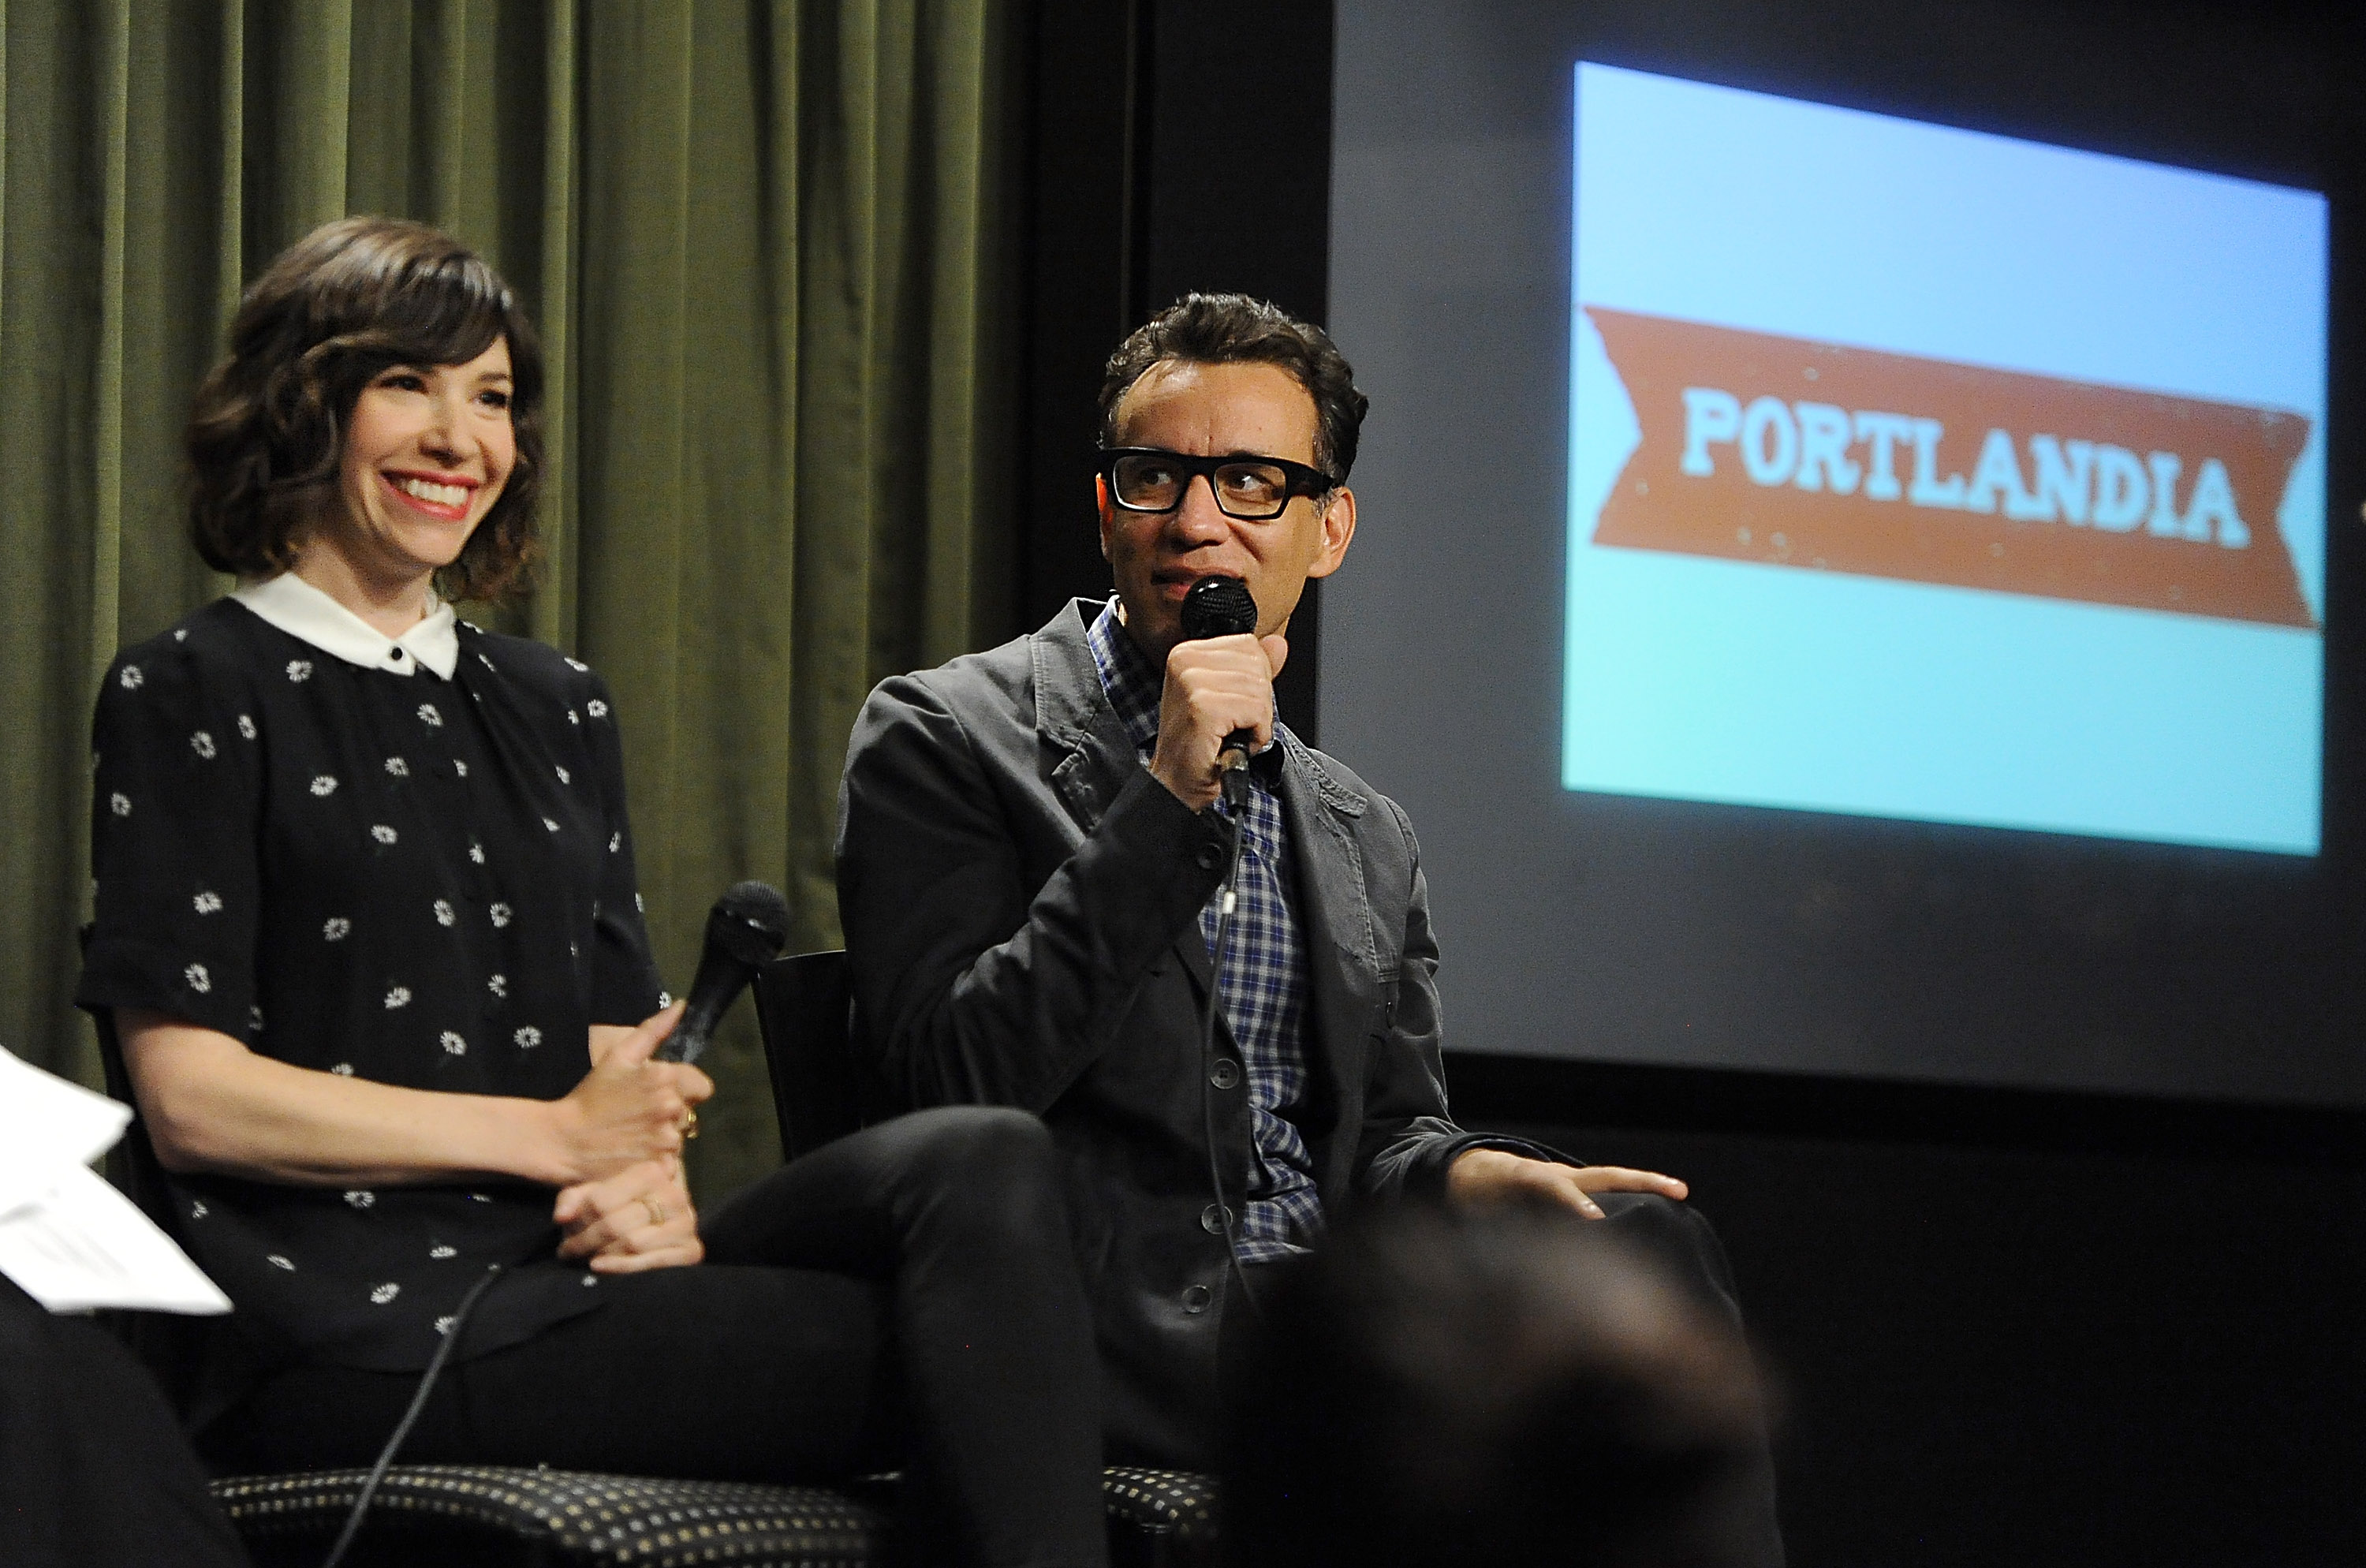 Old Navy Enlists 'Portlandia' Stars to Sell Holiday Sweaters